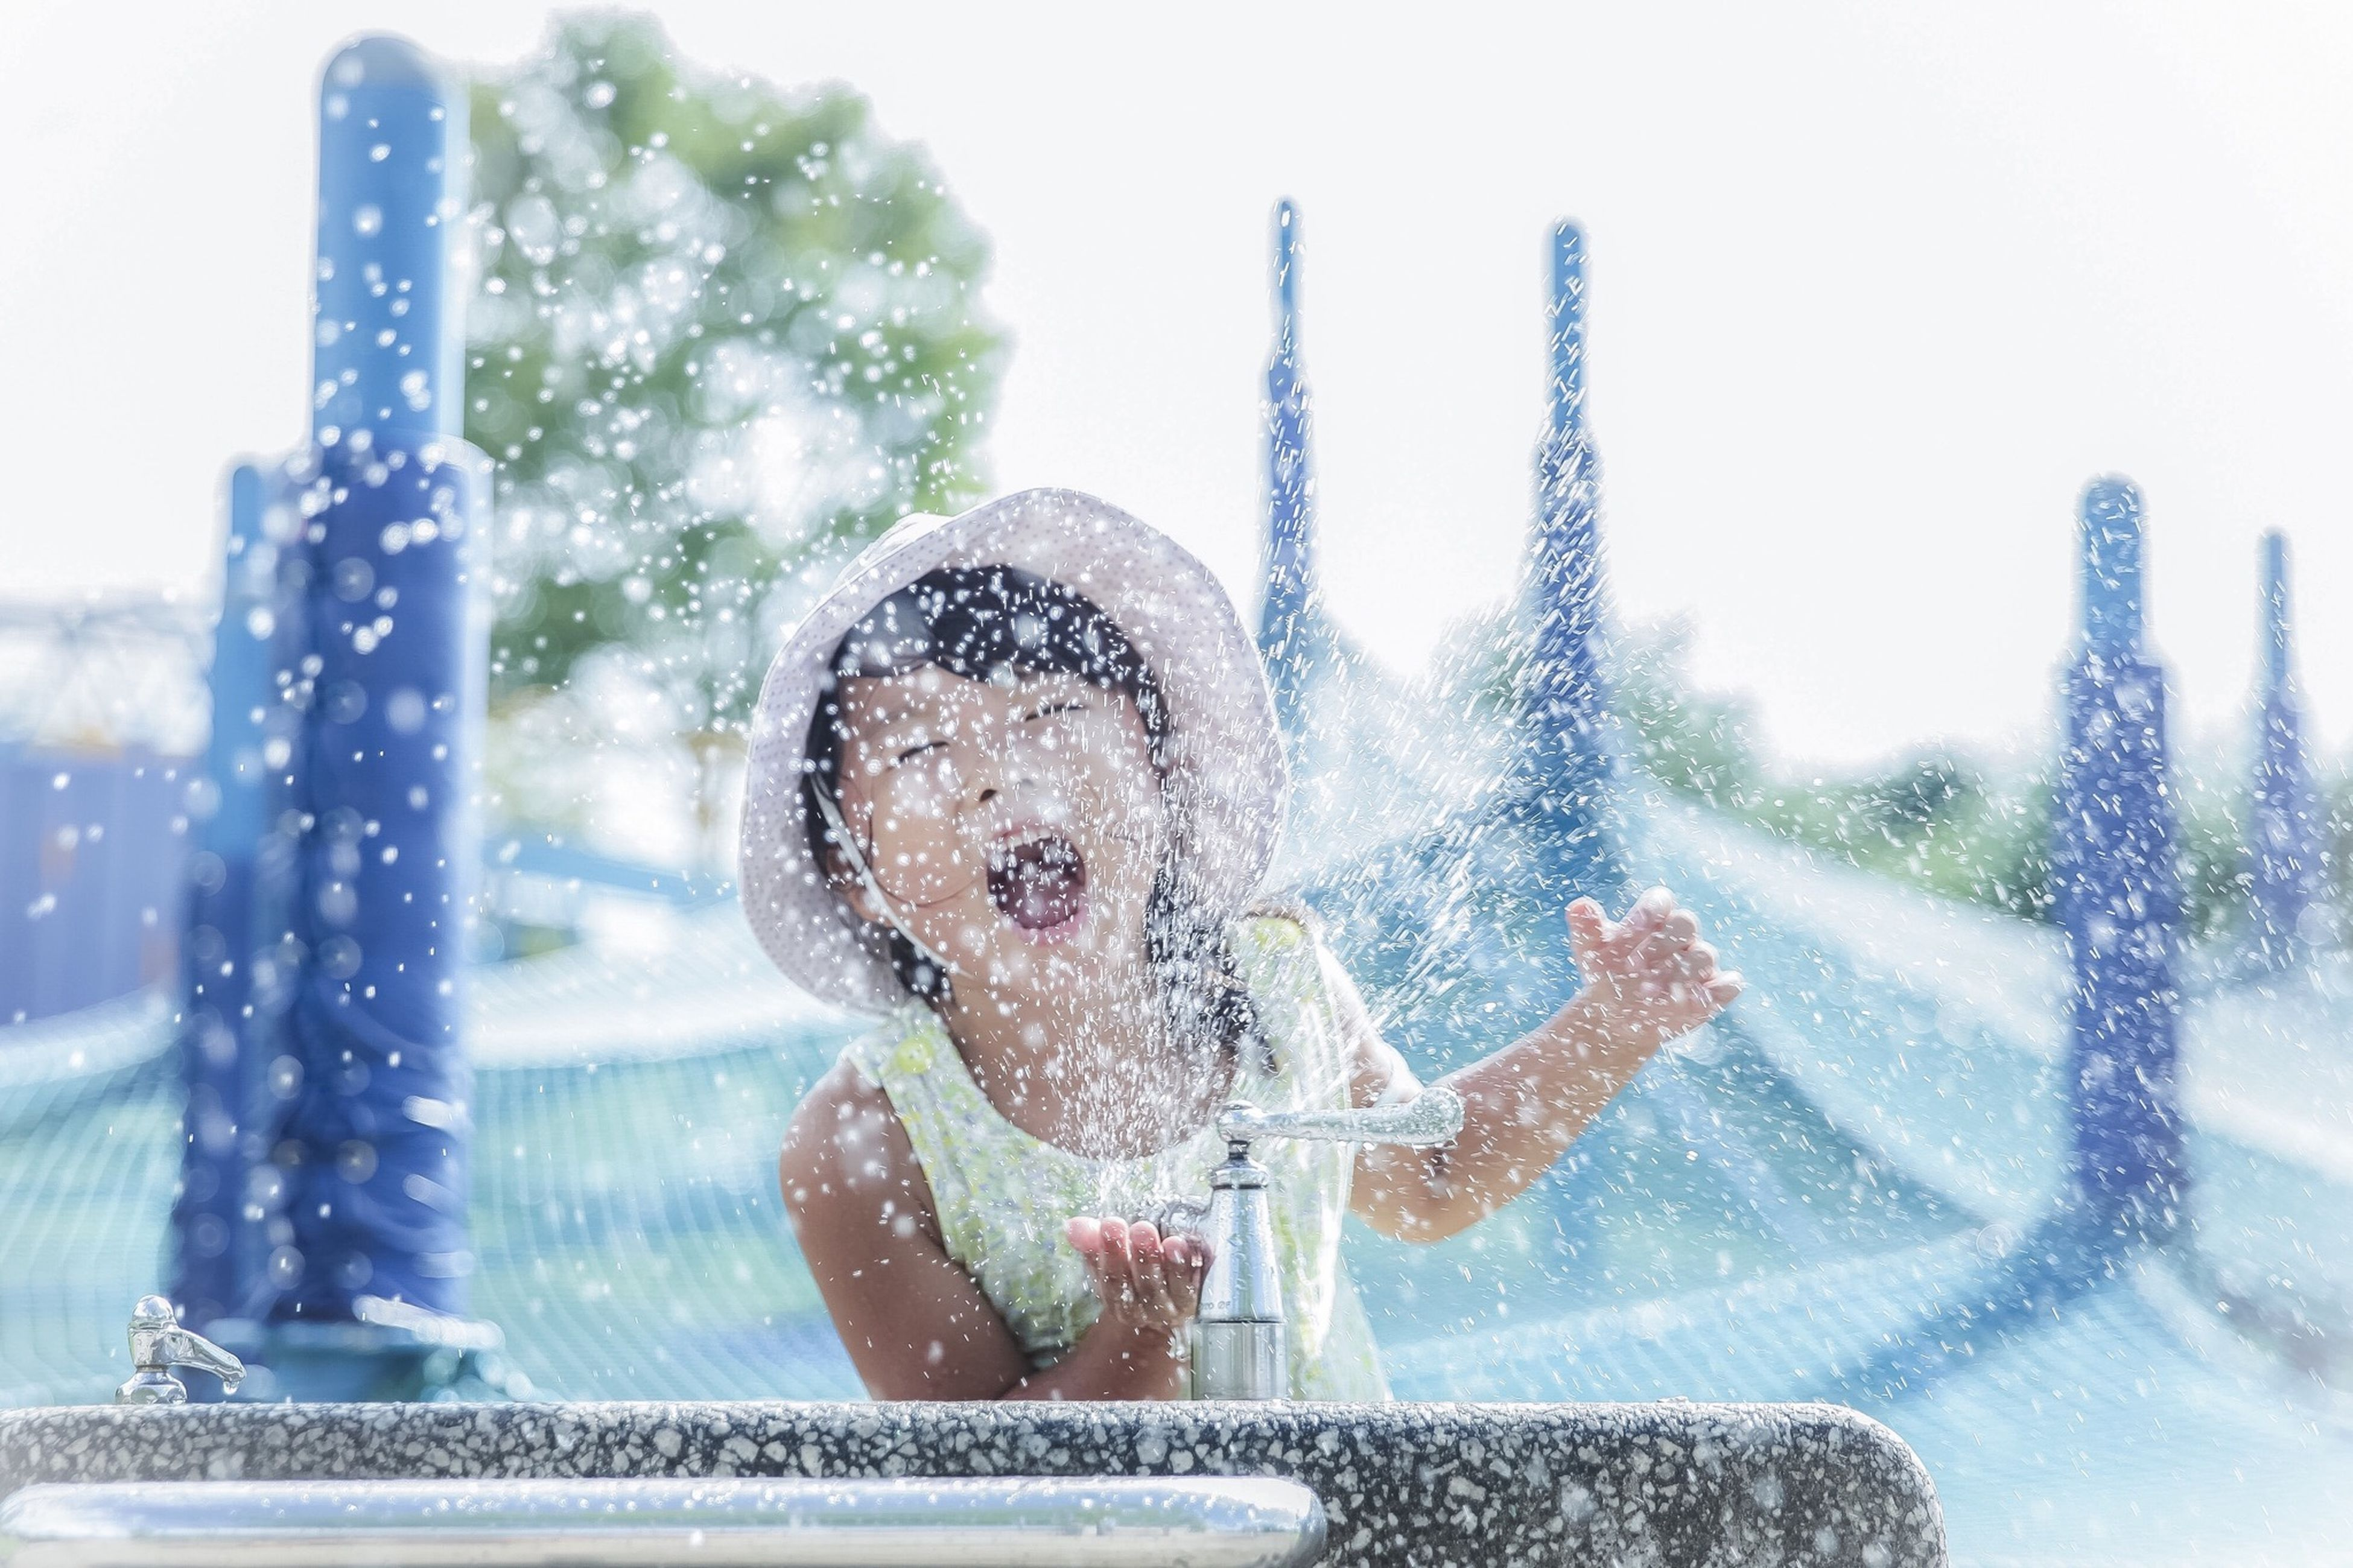 childhood, elementary age, motion, lifestyles, leisure activity, playful, enjoyment, person, girls, wet, playing, water, spraying, fun, focus on foreground, splashing, washing, fountain, day, long hair, joy, enjoying